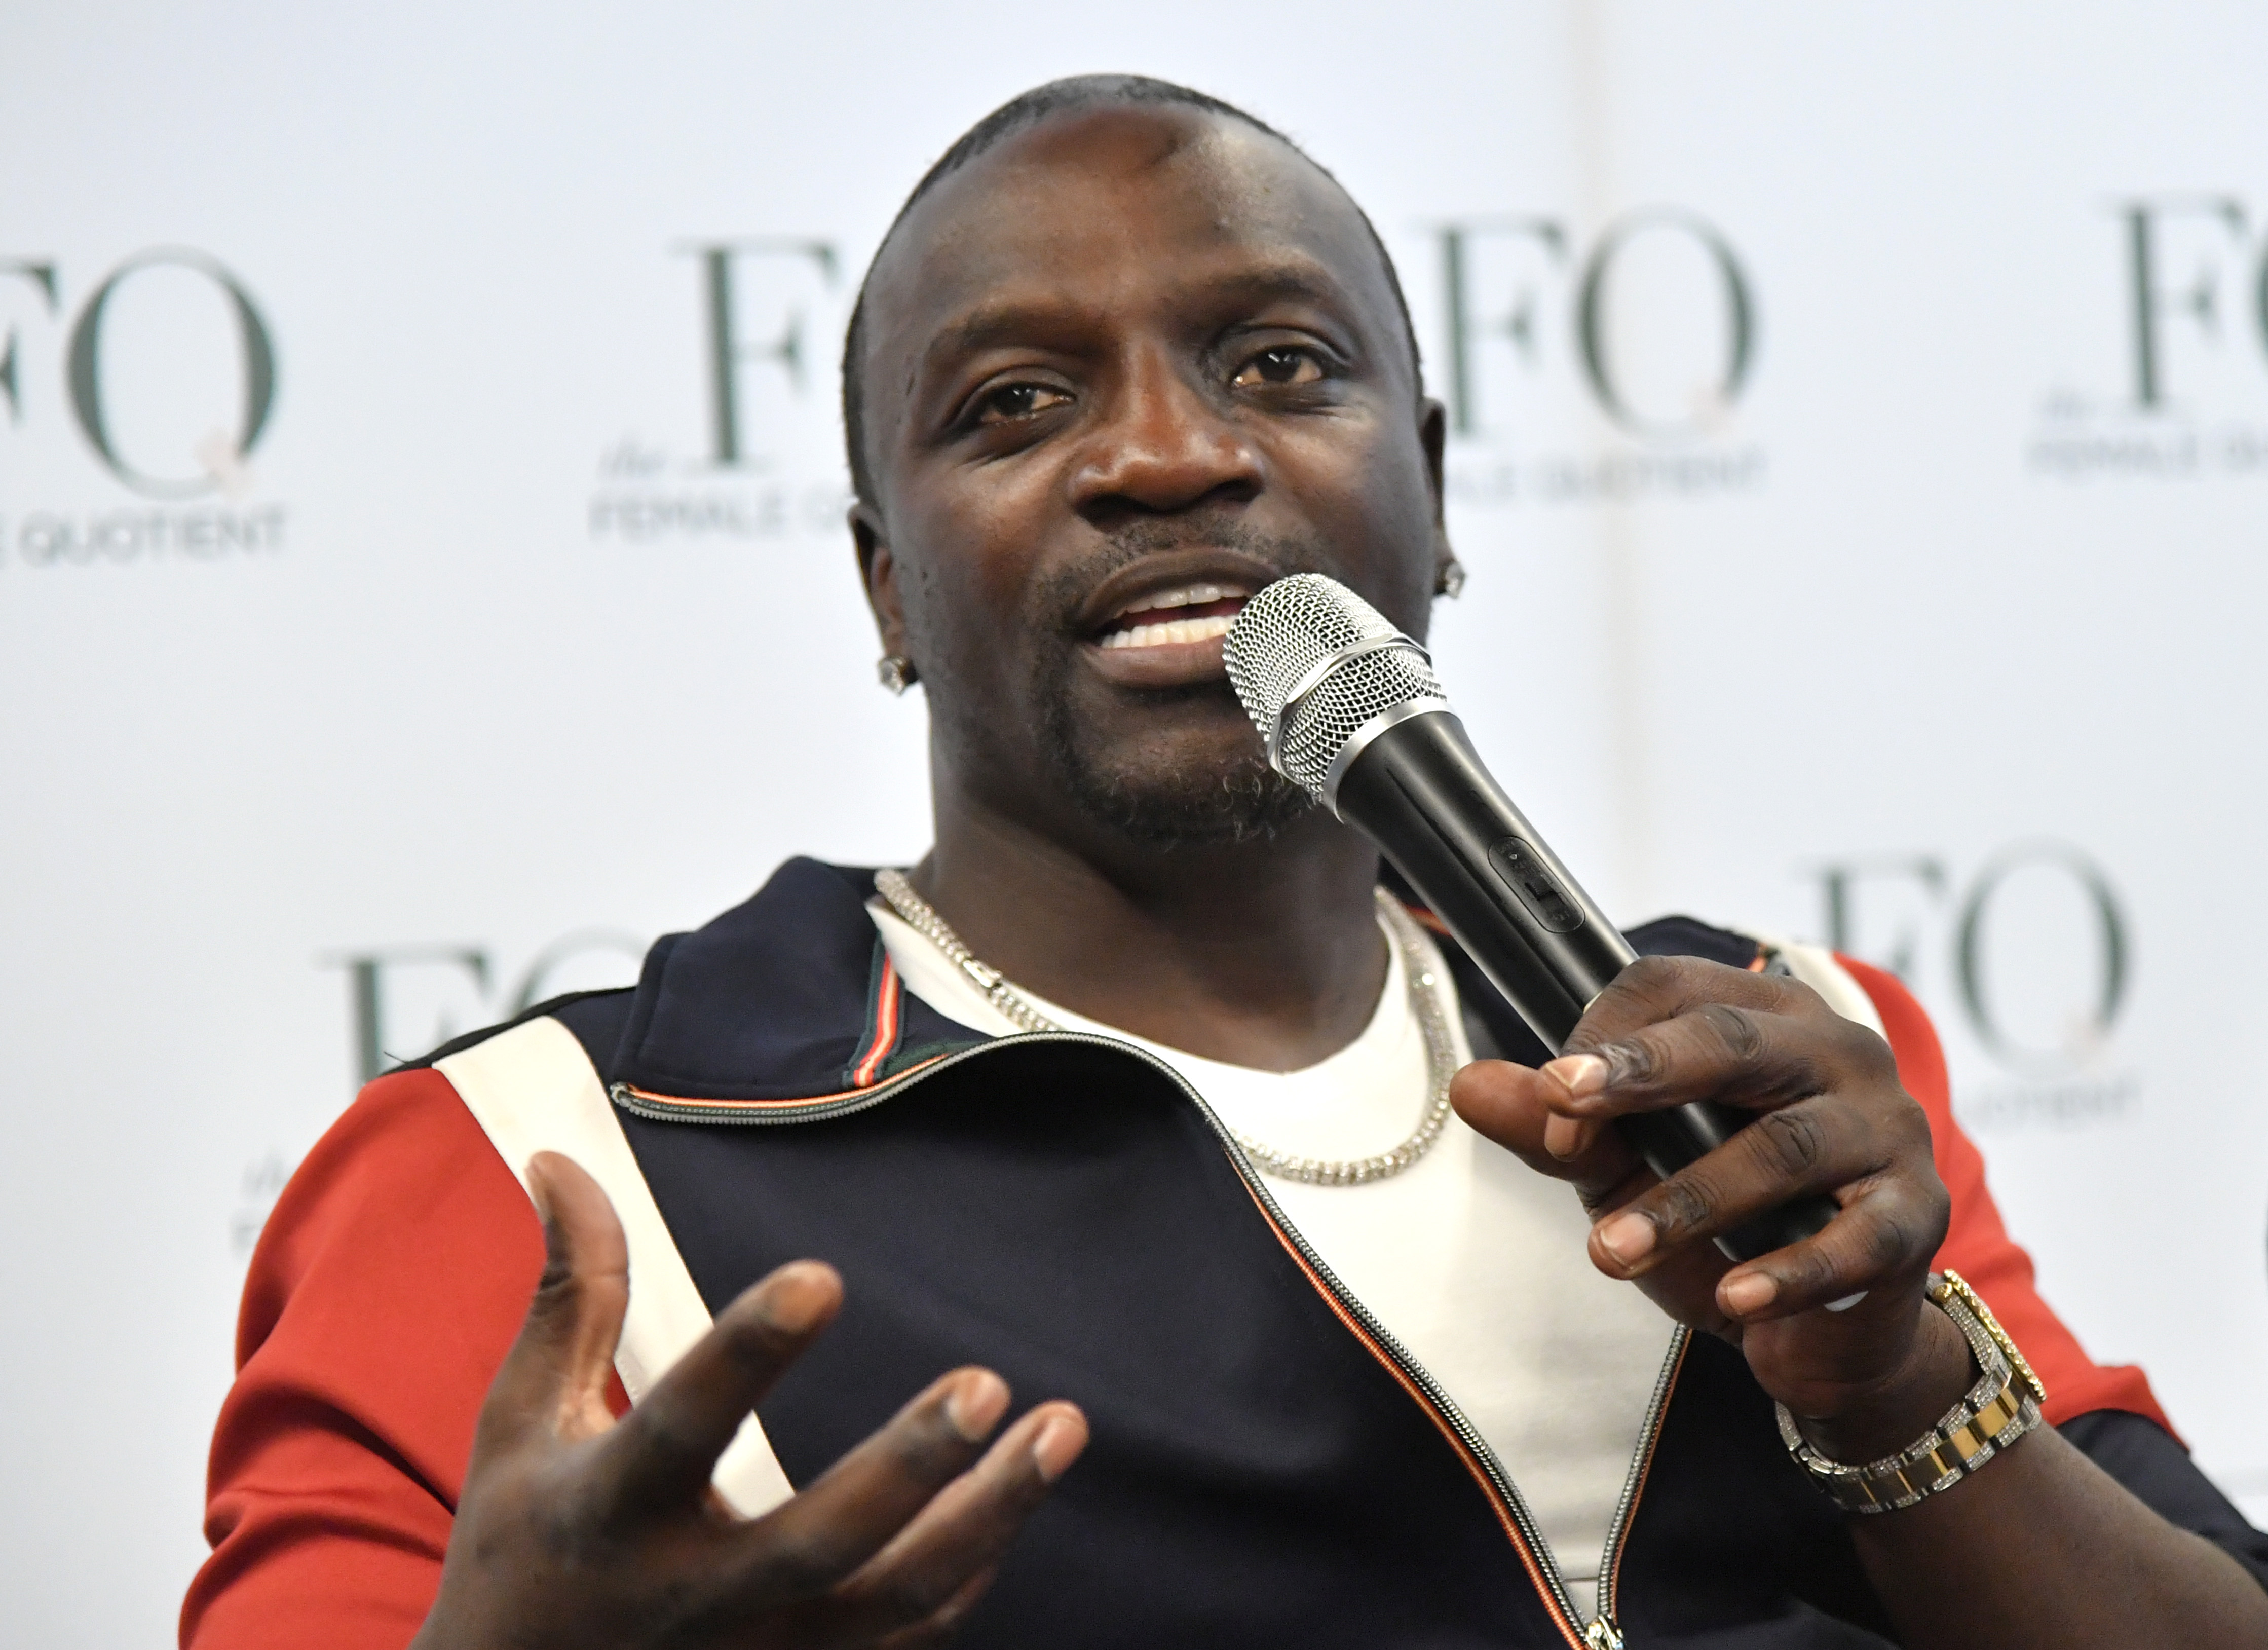 Akon is considering on running for president in 2024 now that he is doing music one last time and he lists his credentials and talks Kanye West running.